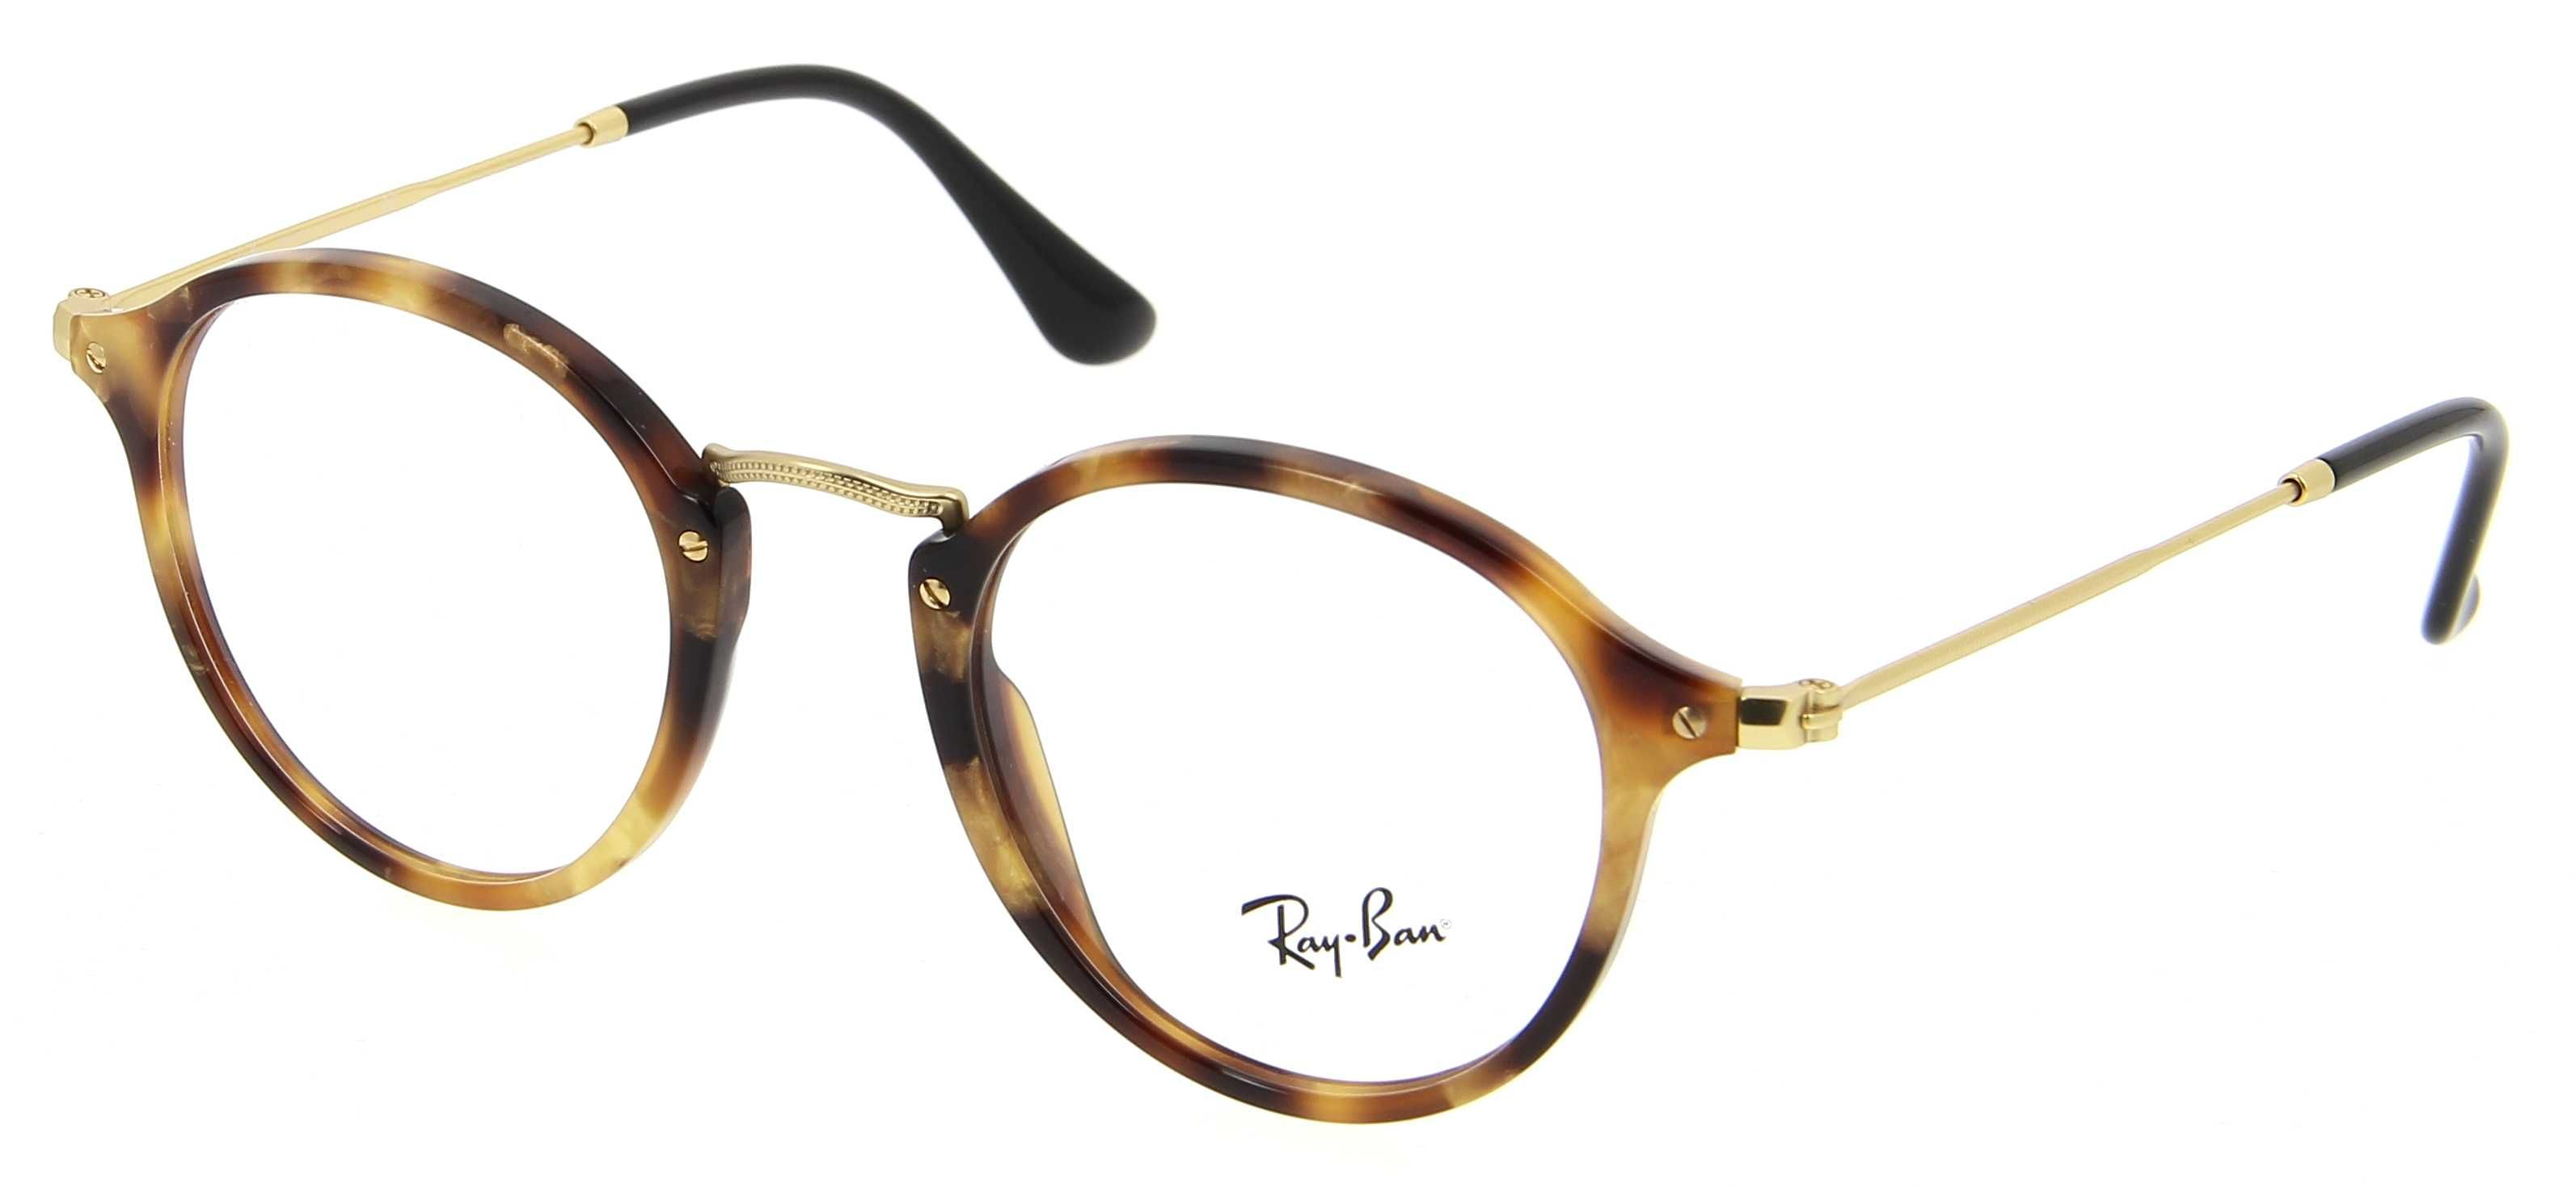 Ray-ban rx 2447v 5494 47 21   accessories   Pinterest   Glasses ... d093f96fda5f